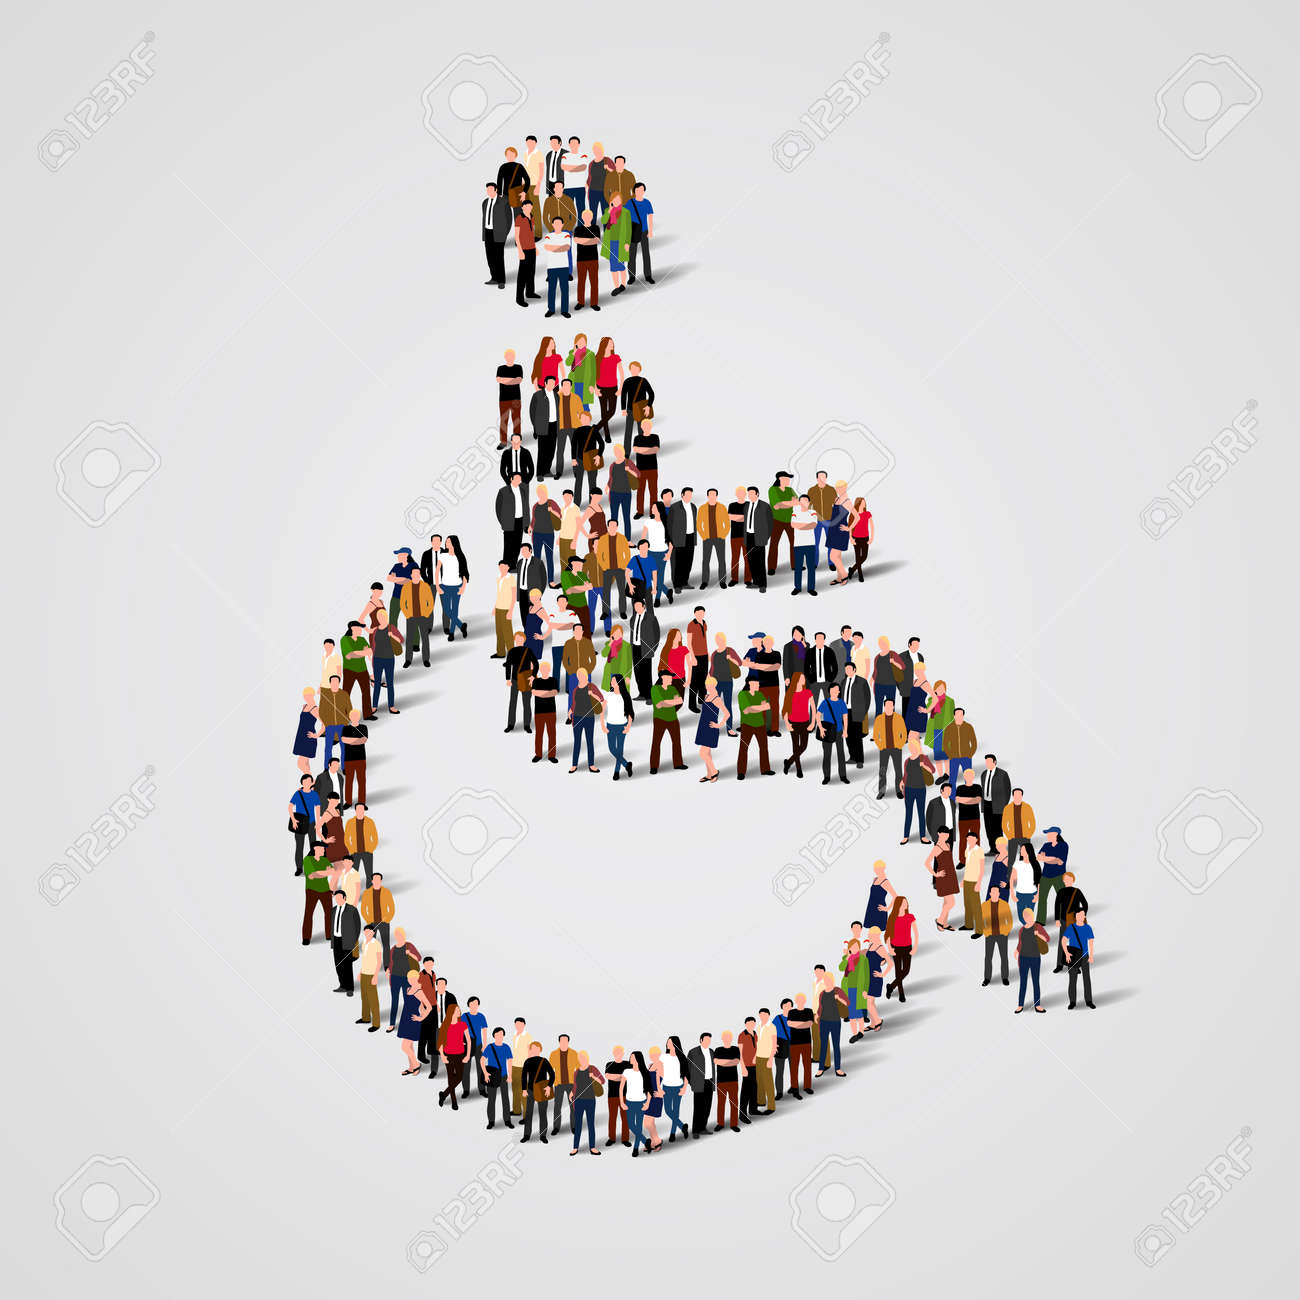 Large group of people in the shape of wheelchair. Vector illustration Standard-Bild - 57806830